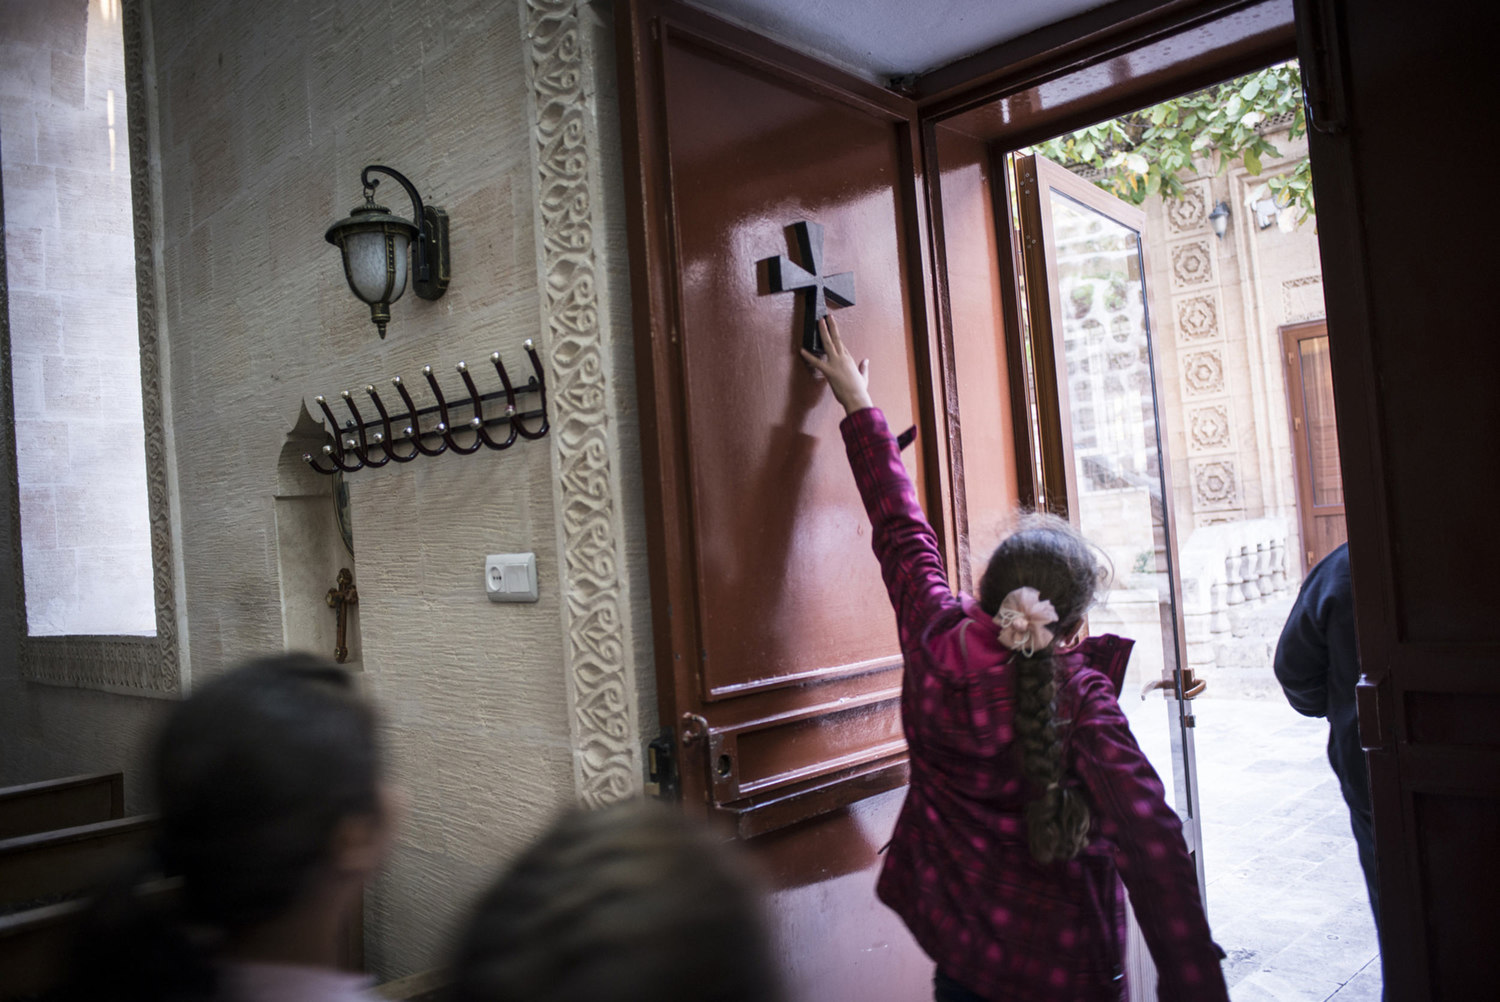 Members of the Asyrian community touch a cross on the door after praying at Mor Baraumo church during an afternoon service on October 30th, 2014.